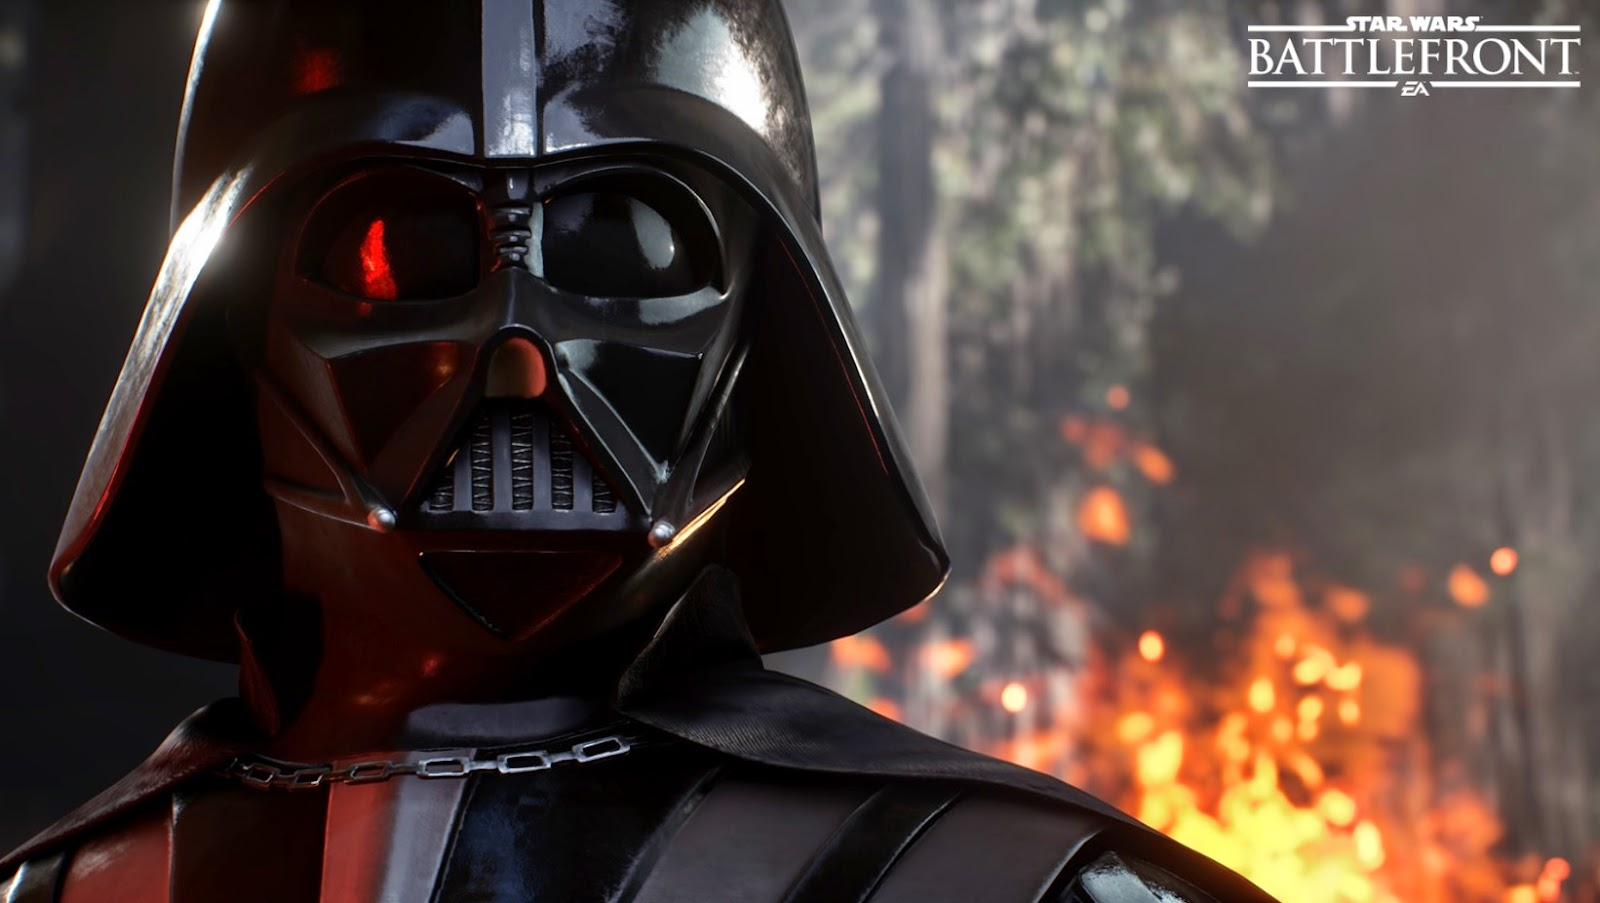 http://psgamespower.blogspot.com/2015/04/star-wars-battlefront-force-is-strong.html